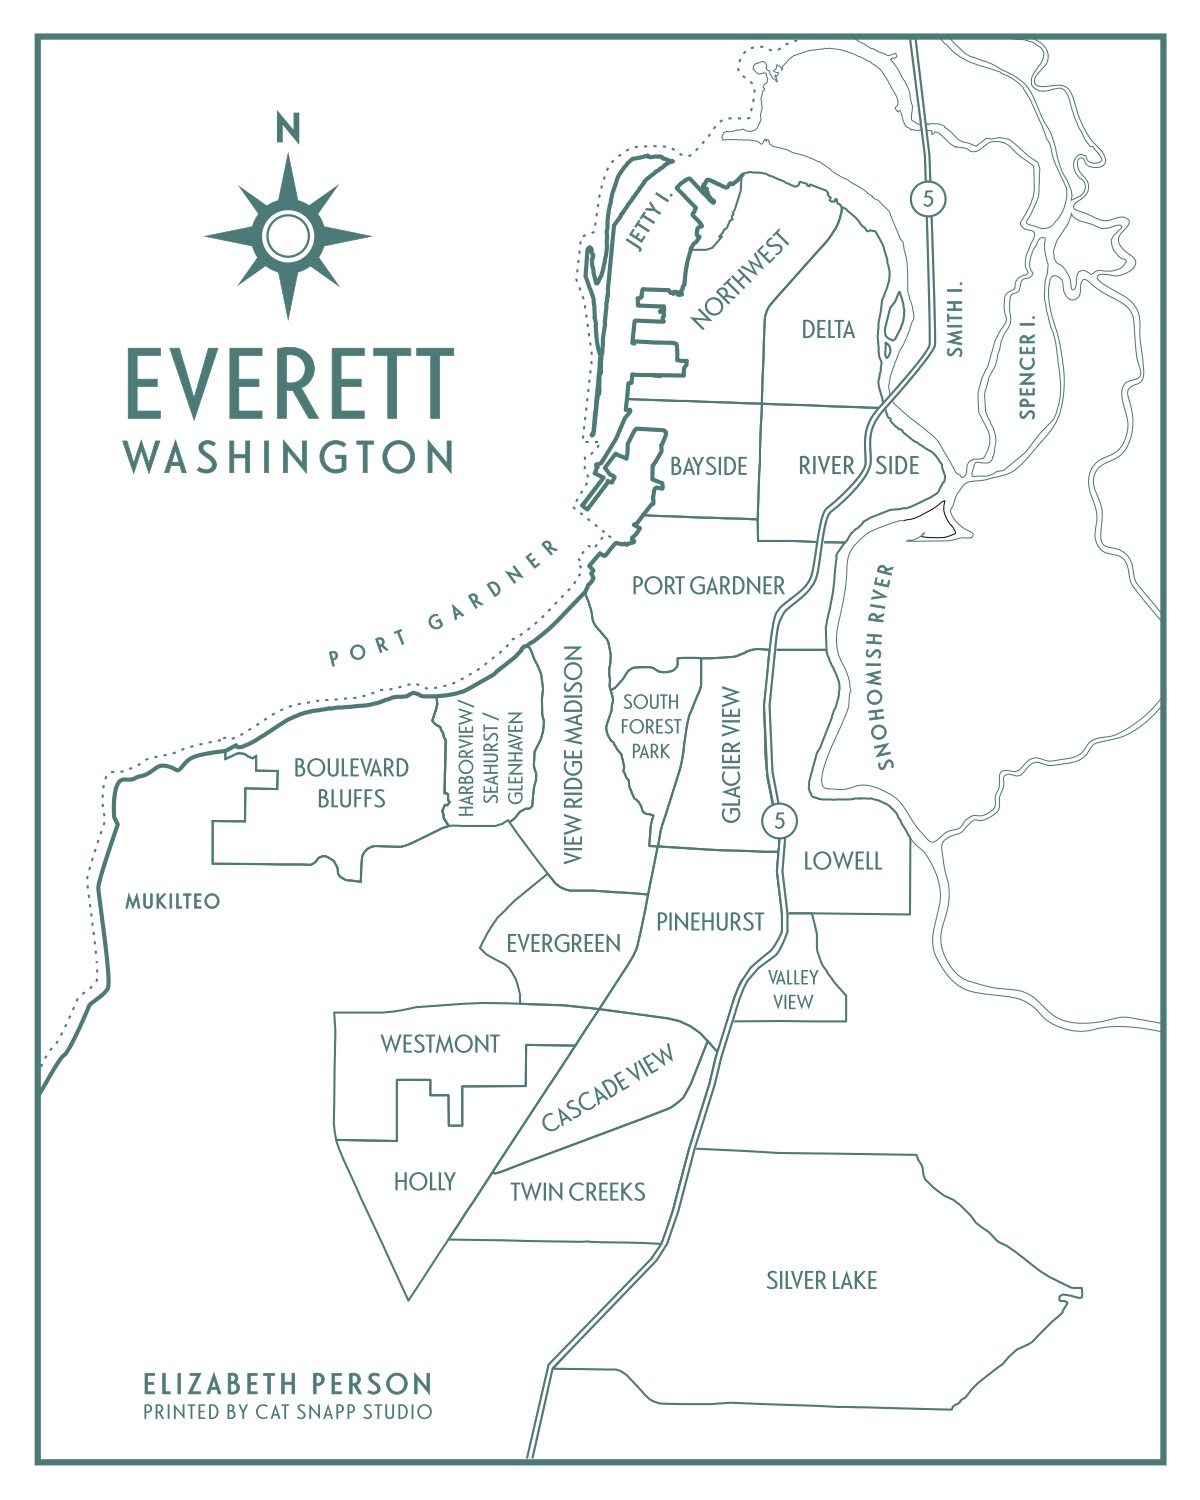 Everett Neighborhood Map by  Elizabeth Person Art & Design .